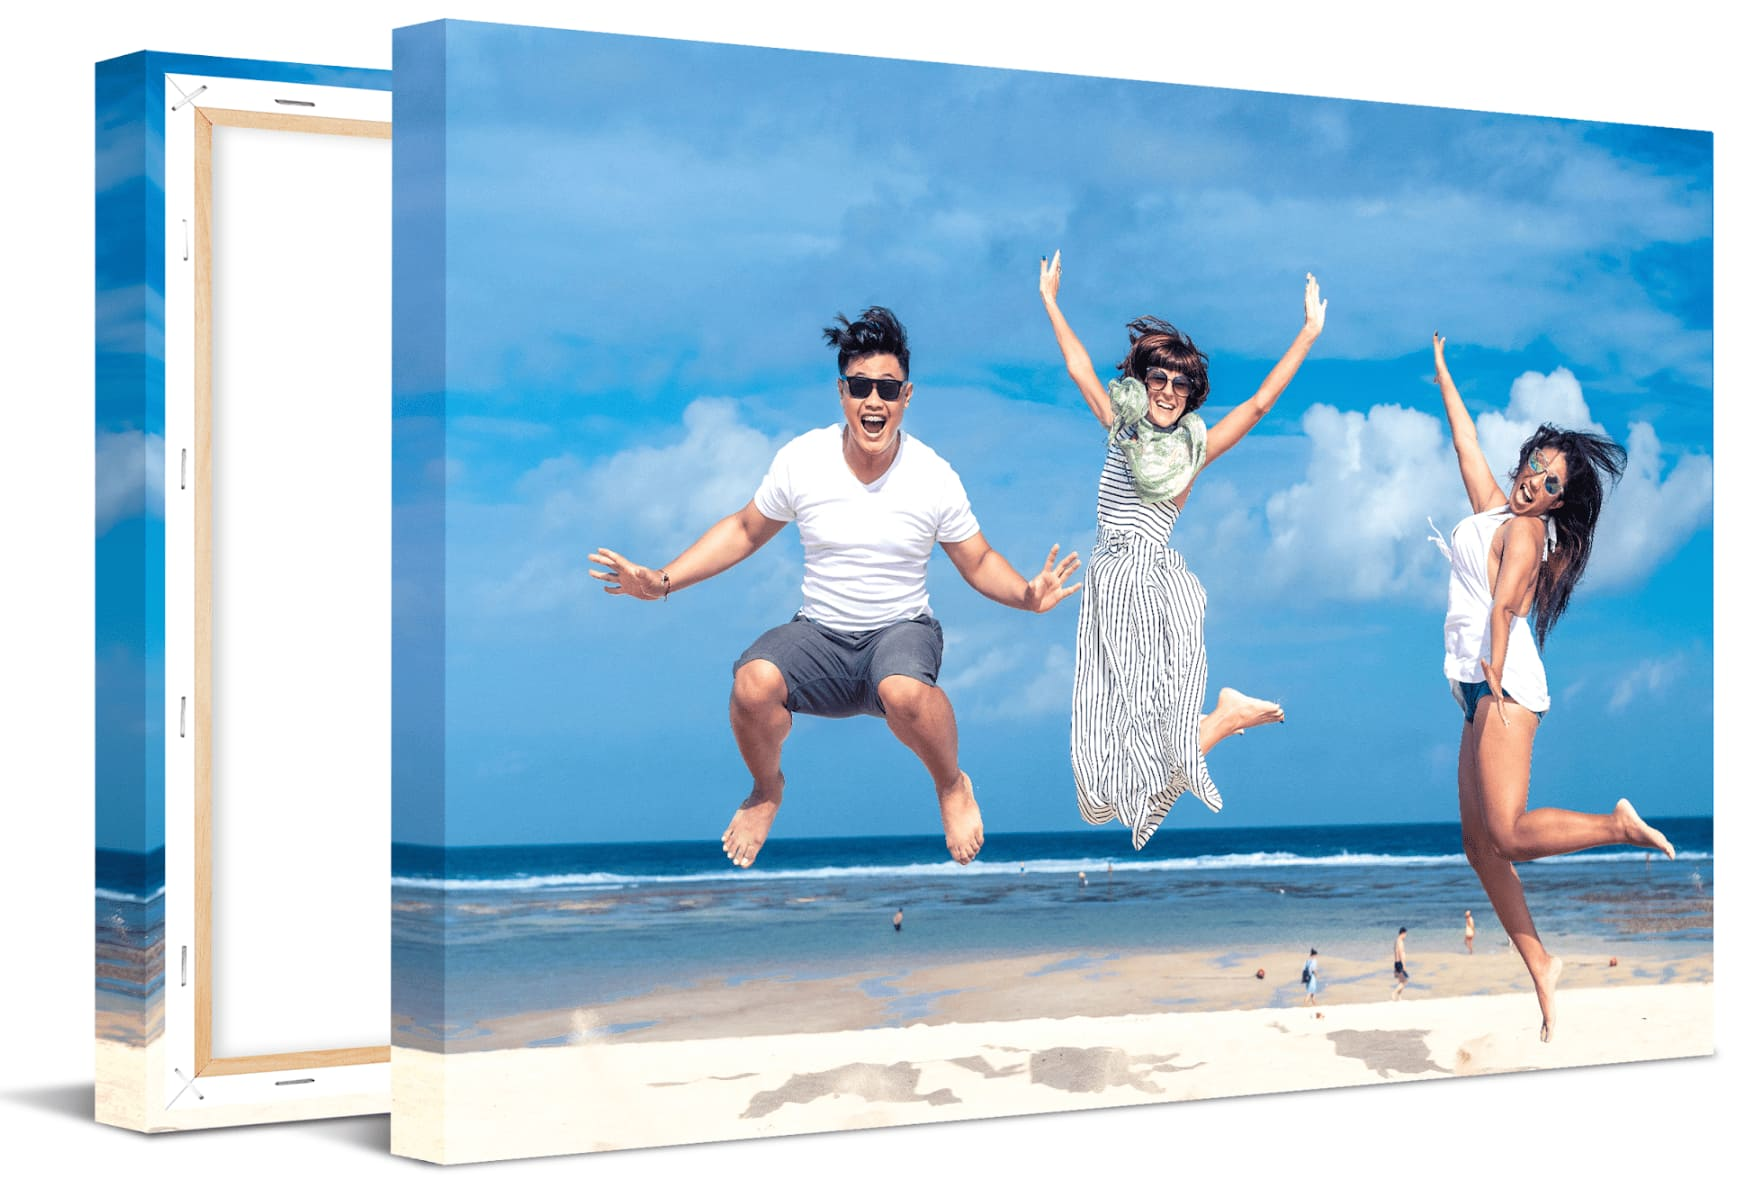 20x16 inch Canvas Prints for $17.90, 2 for $29.90, 3 for $42.90 Shipped